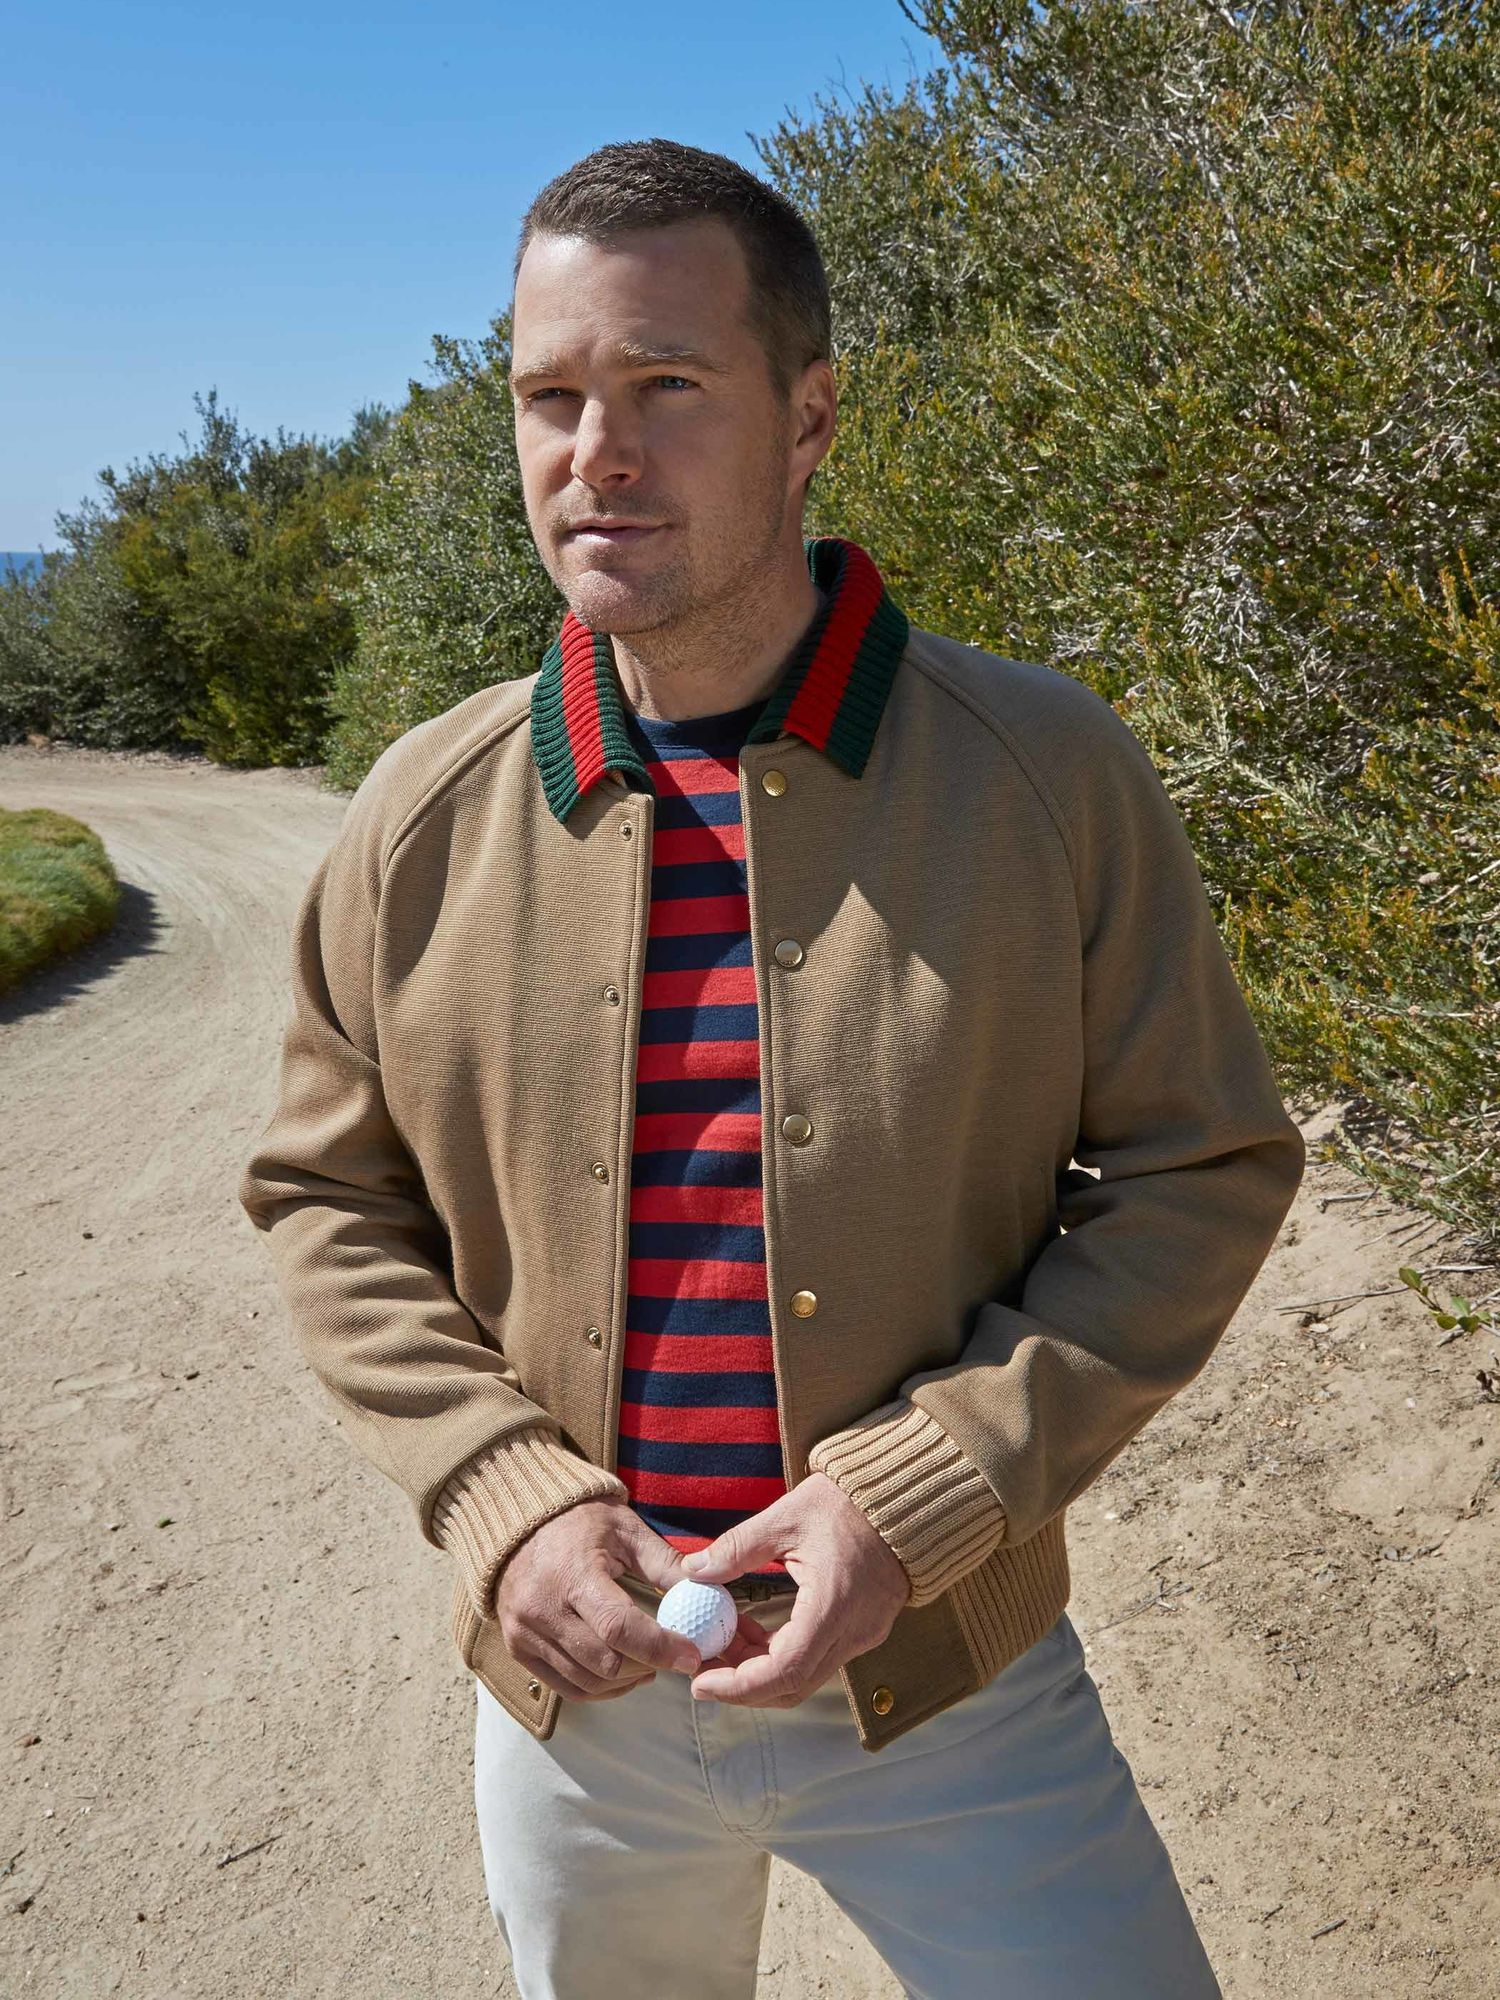 Chris ODonnell in a red and blue striped shirt and camel jacket staring off into the distance